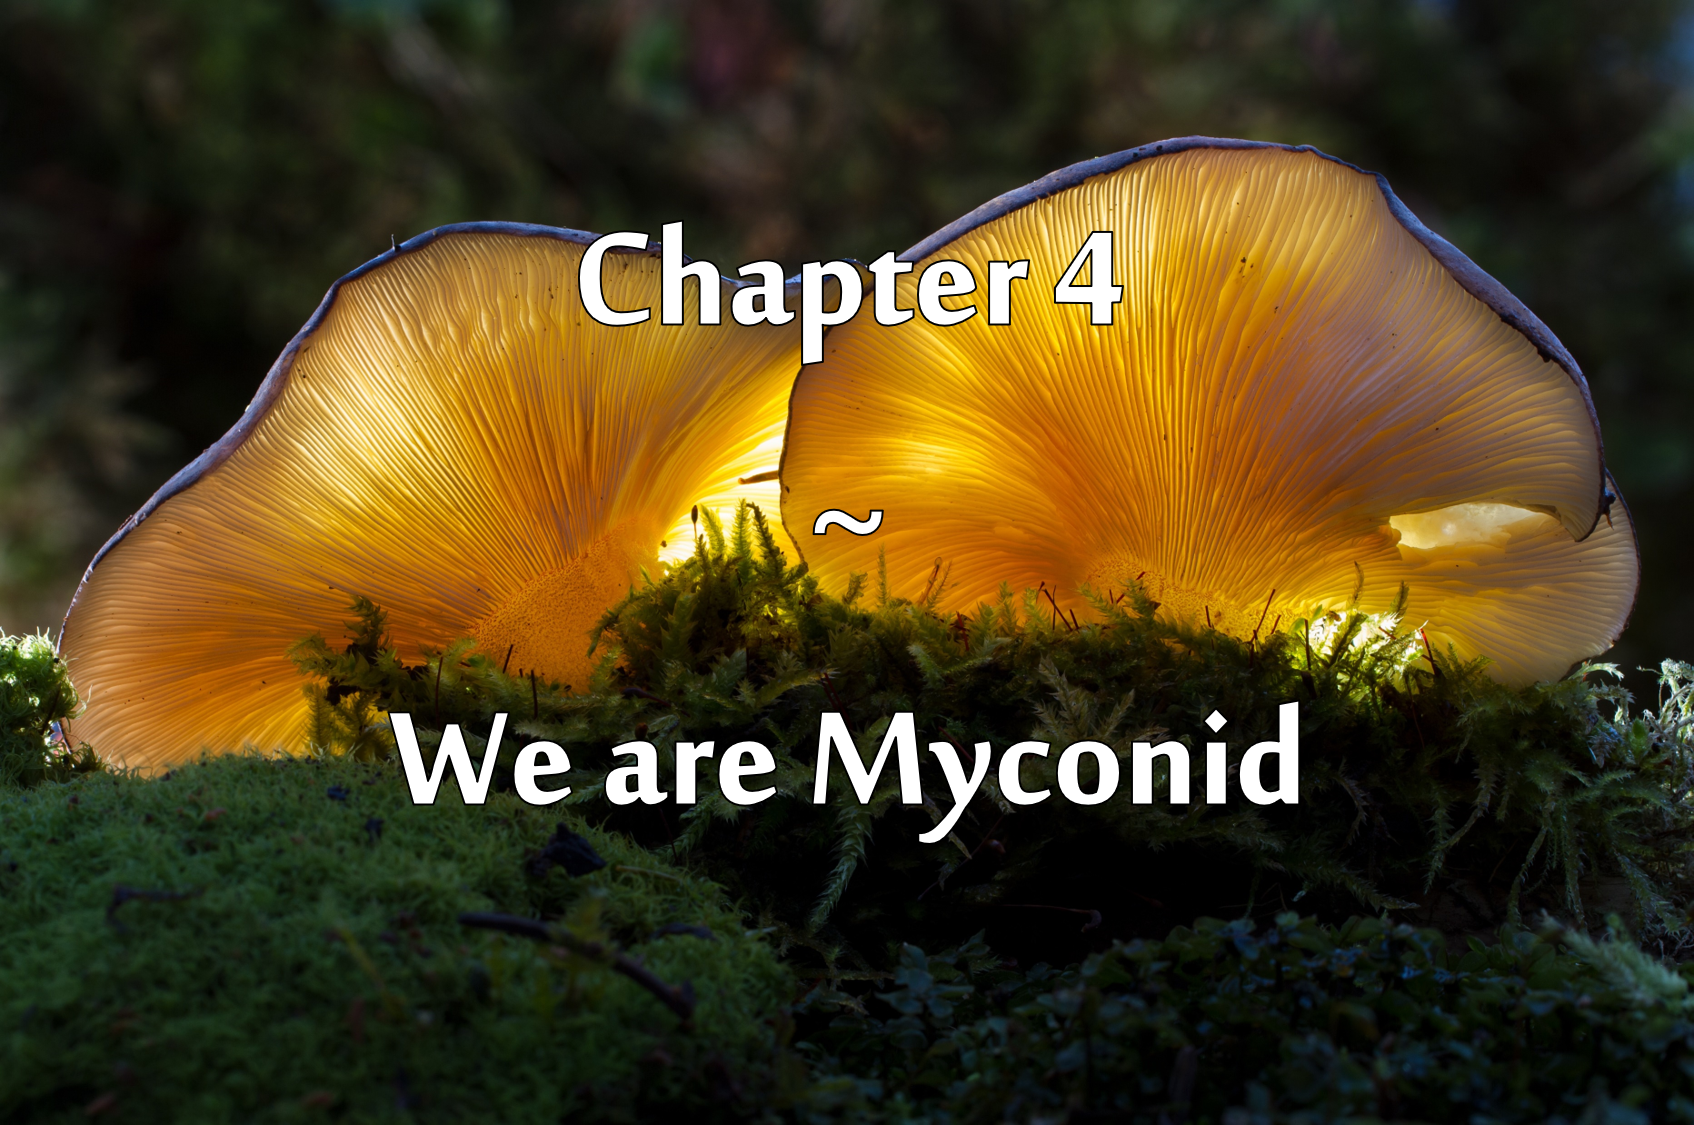 Two bright yellow mushrooms growing amidst moss